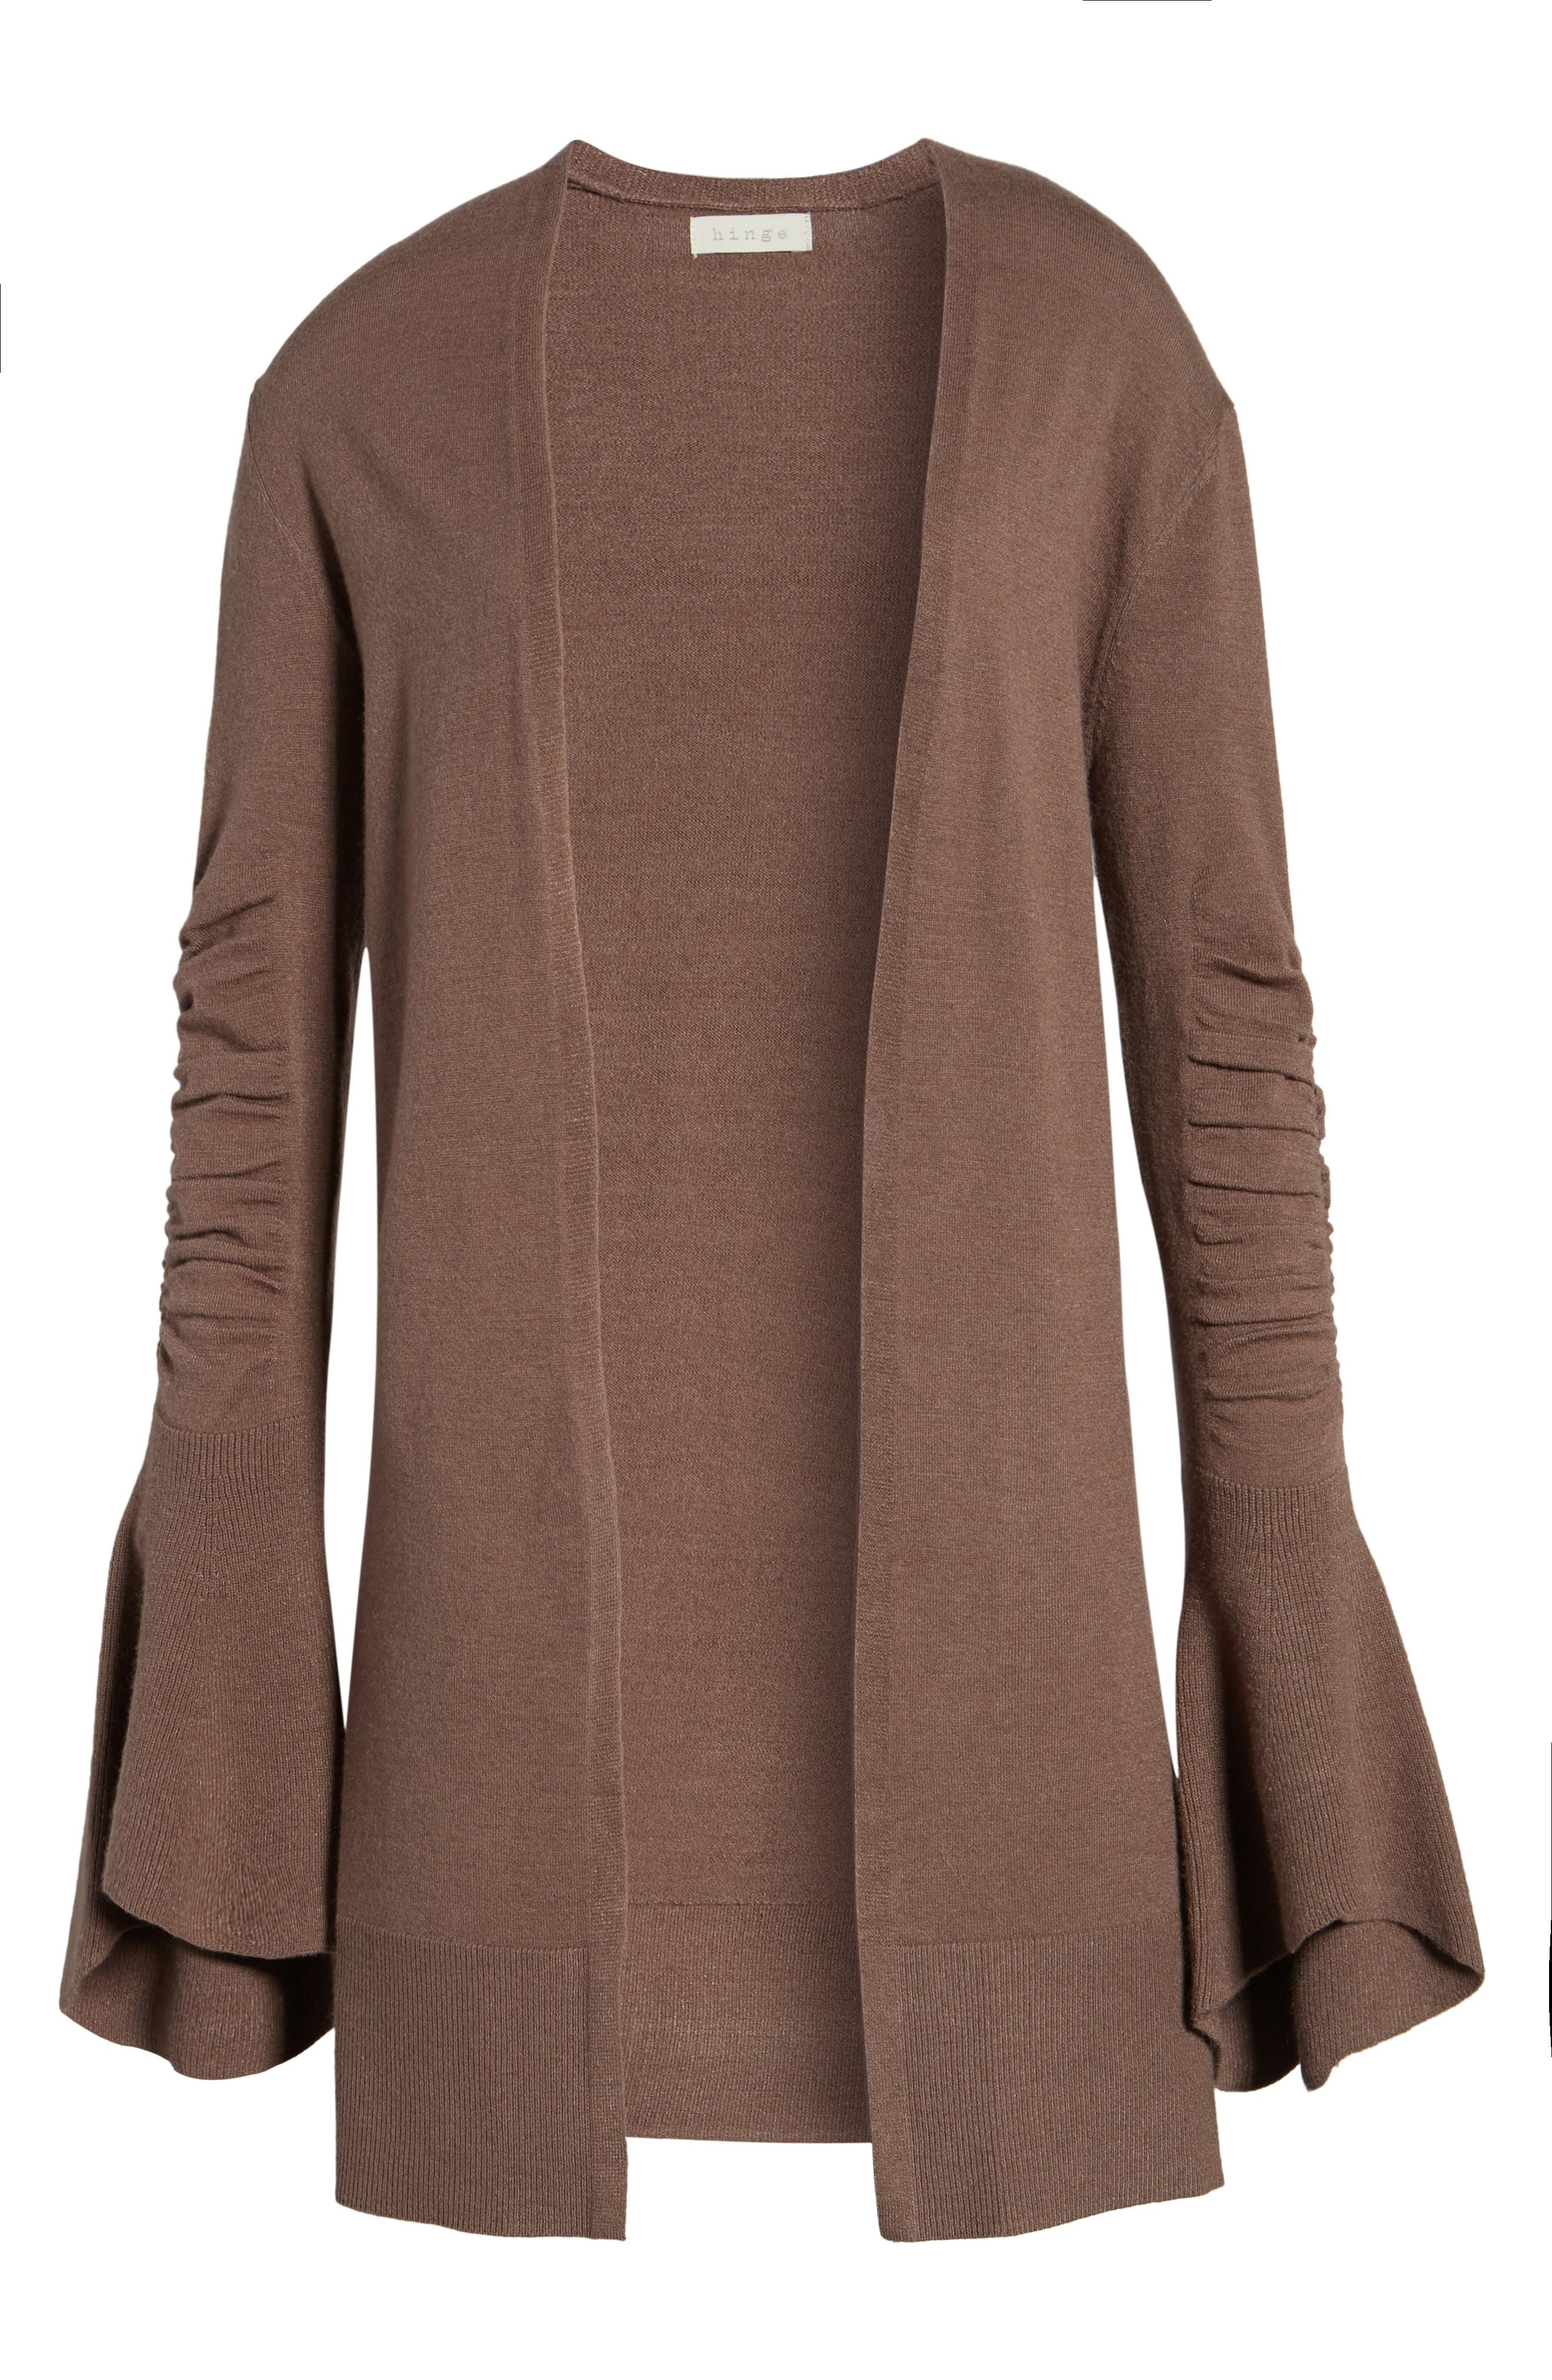 Ruched Bell Sleeve Cardigan,                             Alternate thumbnail 6, color,                             Brown Taupe